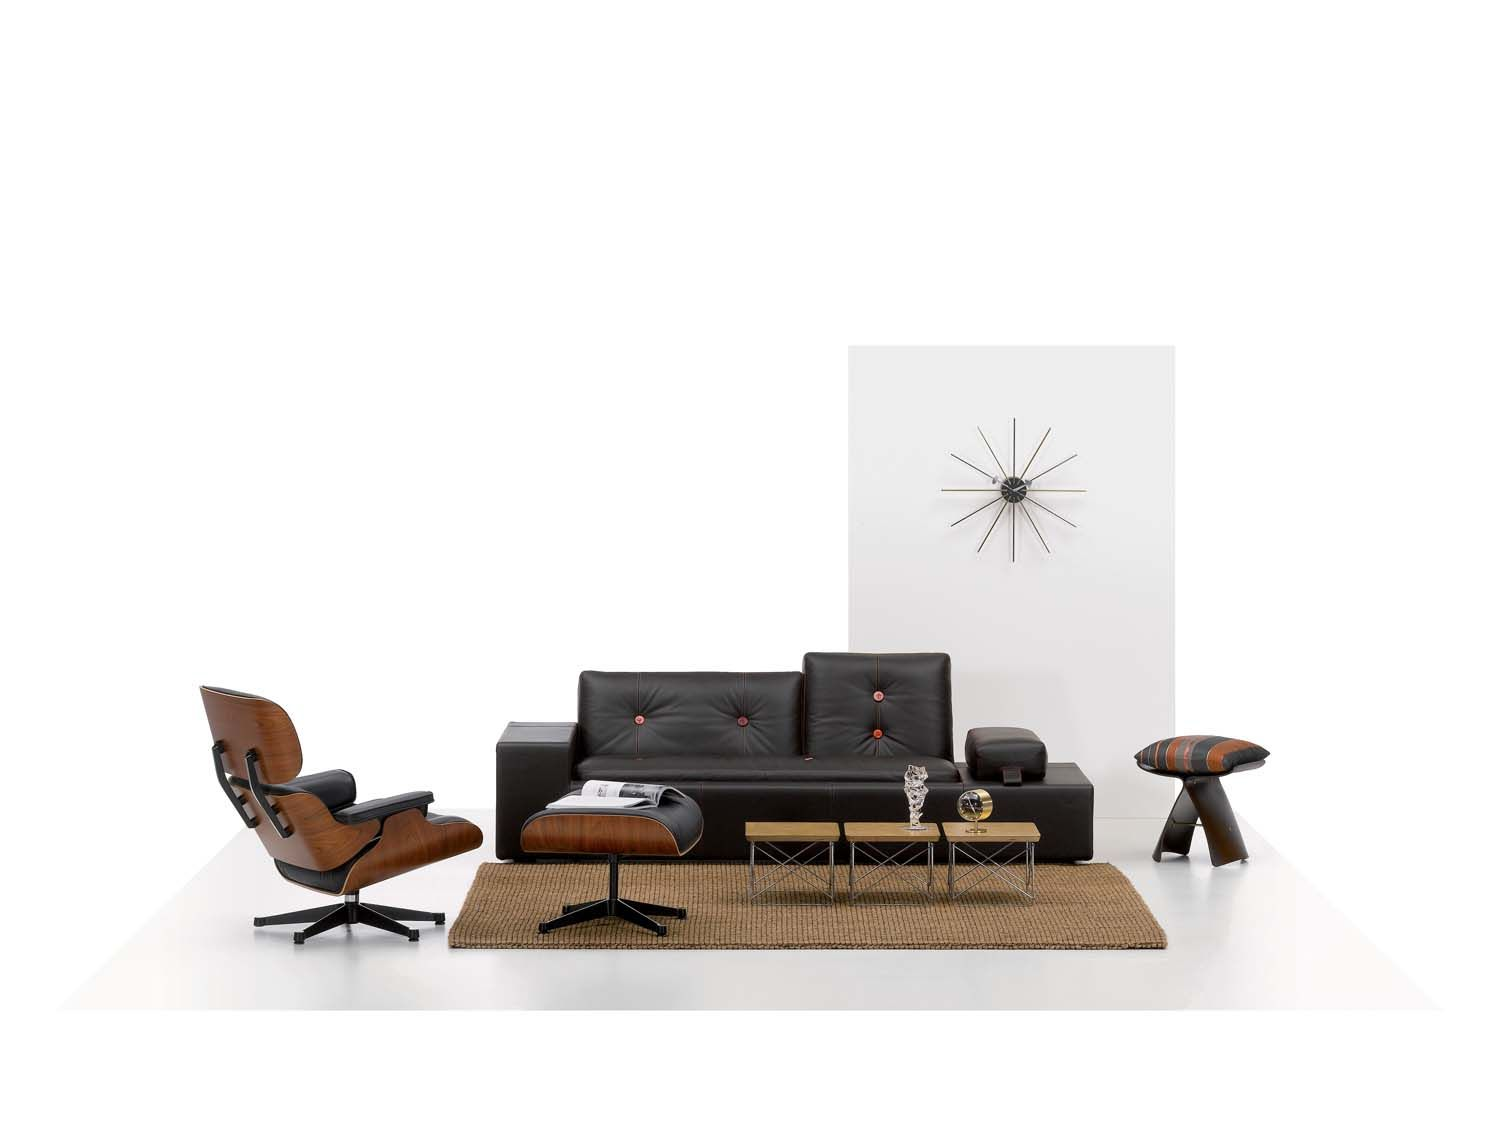 Eames Lounge Chair Vitra Furniture Contemporary Chairs Eames Lounge Chair